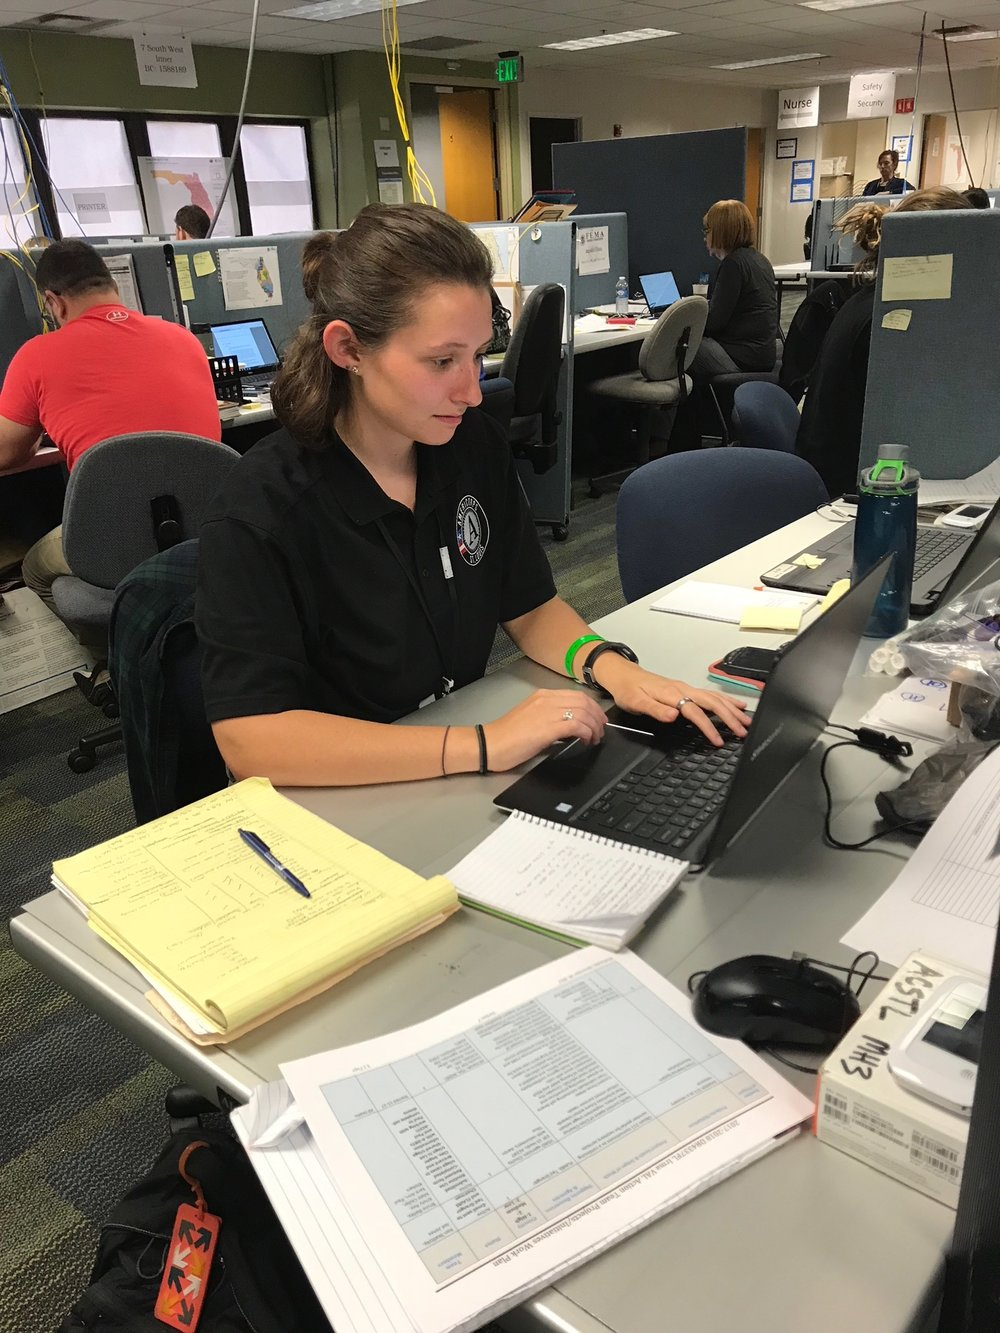 Year 24 member, Heather McSherry, supporting FEMA operations in the Joint Field Office in Orlando, Florida, 2017